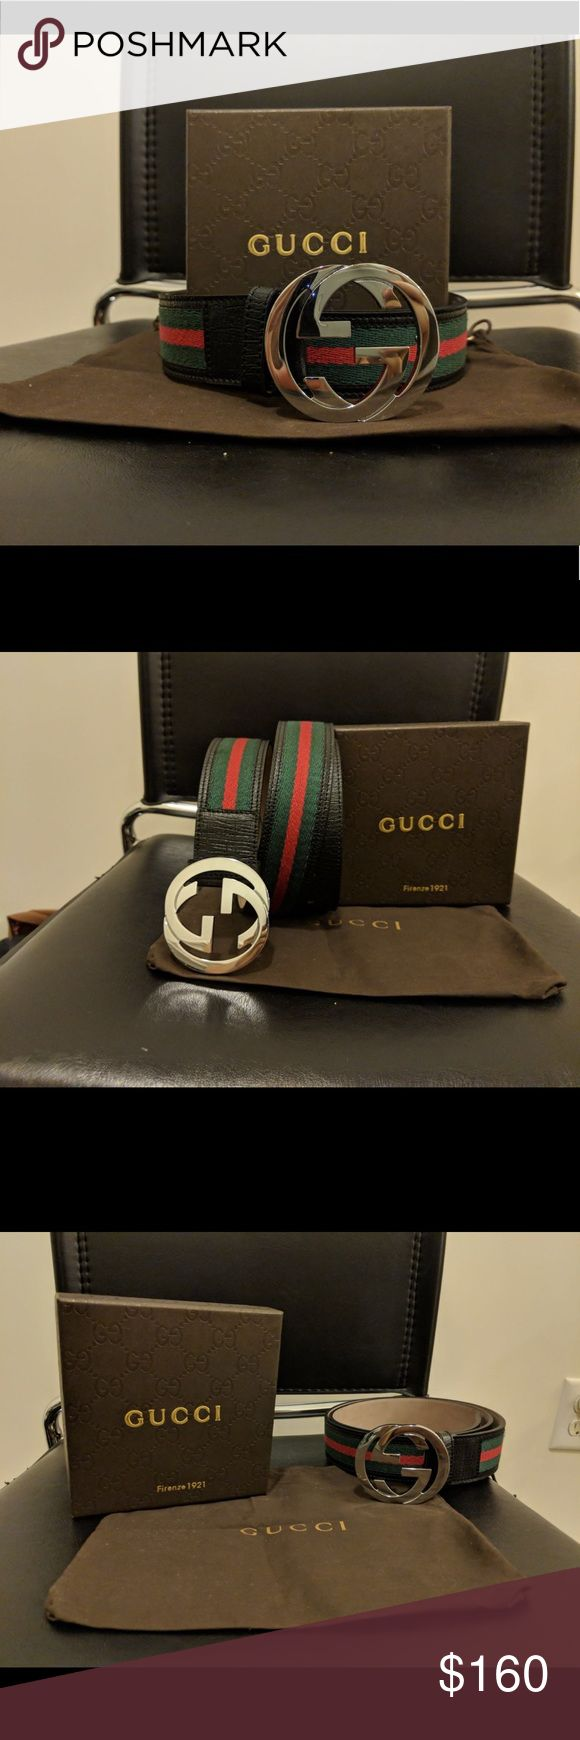 🔥HOT🔥Authentic Men's Black Green Red Gucci Belt This is a brand new never opened 100% Authentic Gucci Belt  *Bought from Gucci Outlet Store*  Comes with  -Dust Bag -Original Tags -Box   Sizing is easy just find you pants size and click buy!   Belt ships out same day through USPS Priority Shipping! Arriving in 1-3 Days   Use the offer button! If it is reasonable I will consider! Bundles are a money saver!   Feel free to drop a comment below!   Get this for your loved one for this Christmas…